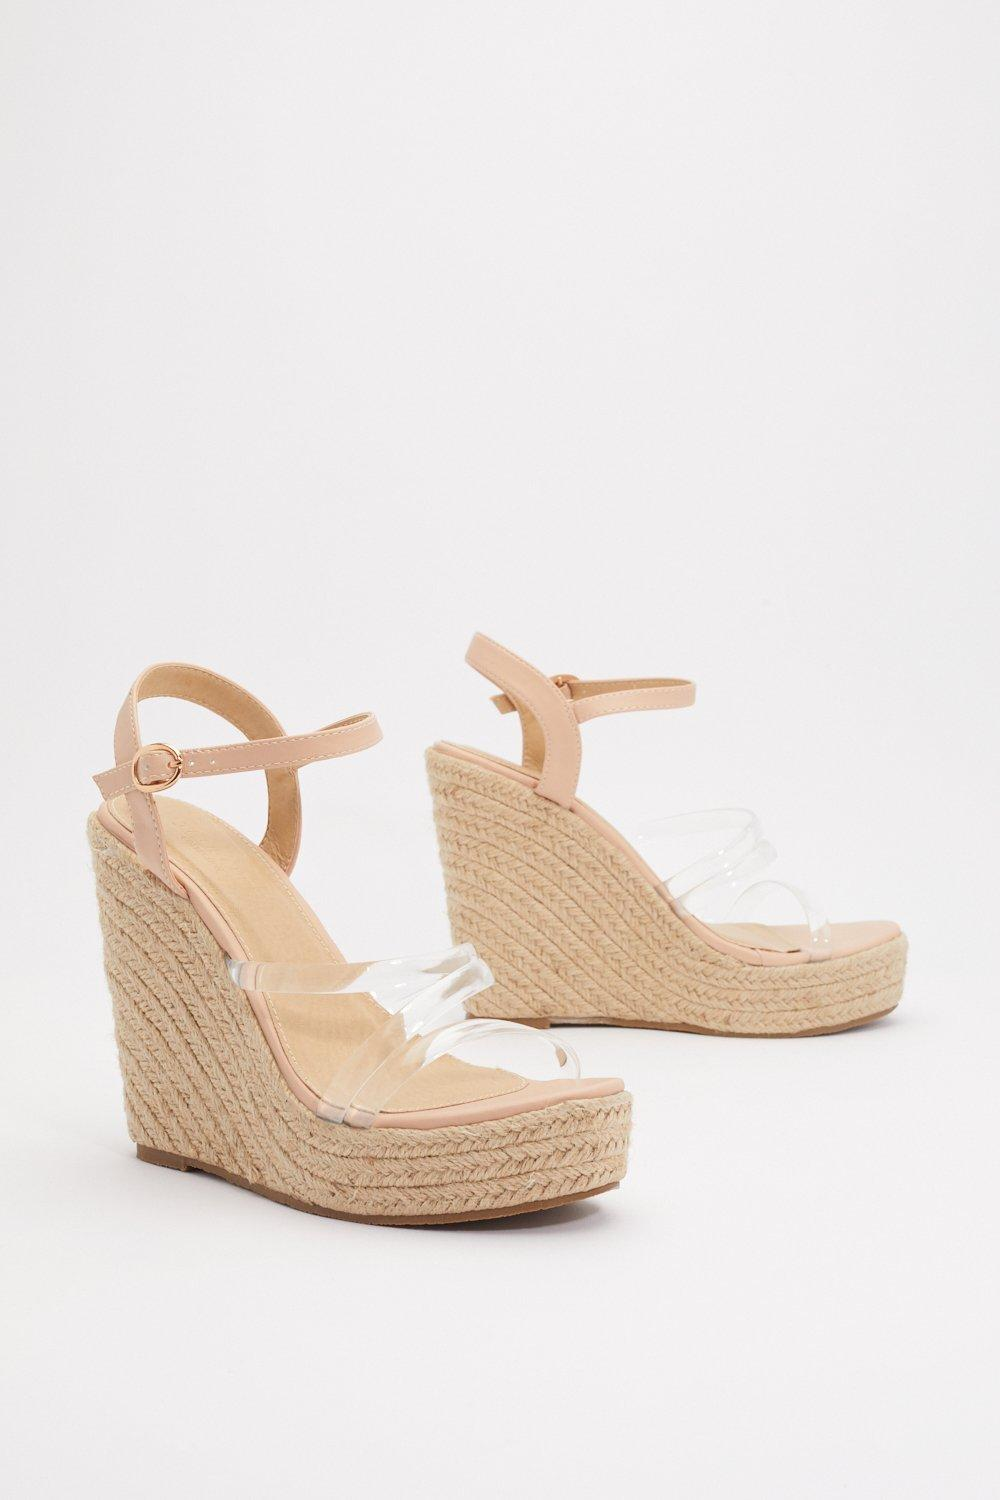 3bfd9861dd1 Up and Running Clear Raffia Wedges | Shop Clothes at Nasty Gal!